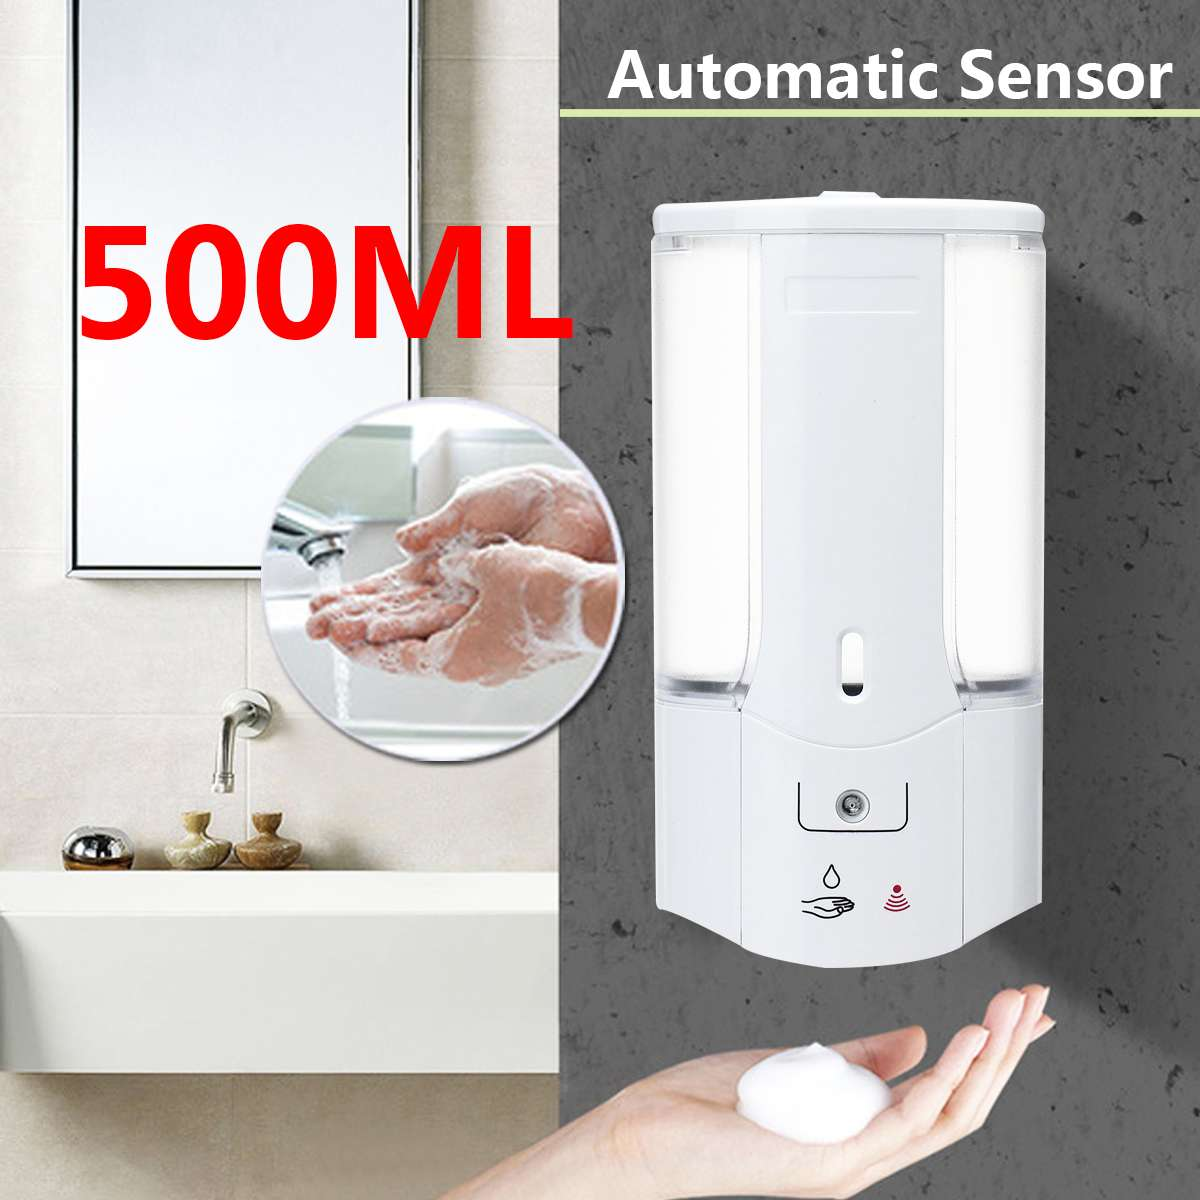 ABS Wall Mount Automatic Hands Free Child Bathroom Kitchen Hand Soap Dispenser